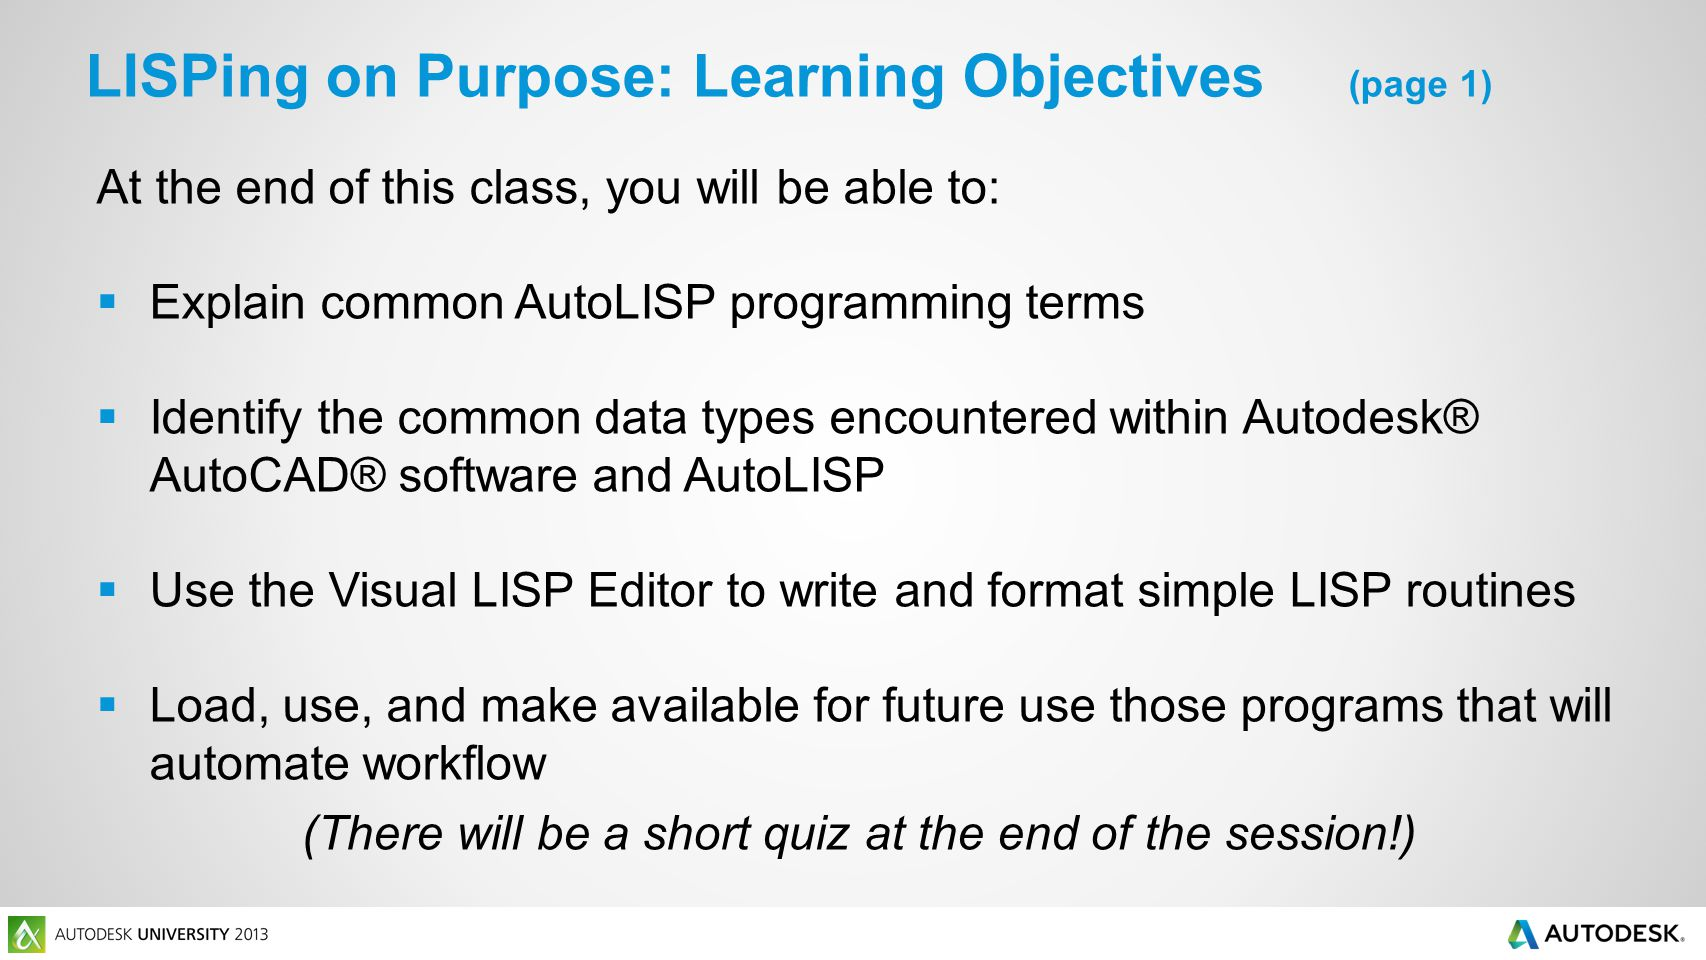 At the end of this class, you will be able to: Explain common AutoLISP programming terms Identify the common data types encountered within Autodesk® AutoCAD® software and AutoLISP Use the Visual LISP Editor to write and format simple LISP routines Load, use, and make available for future use those programs that will automate workflow (There will be a short quiz at the end of the session!) LISPing on Purpose: Learning Objectives (page 1)